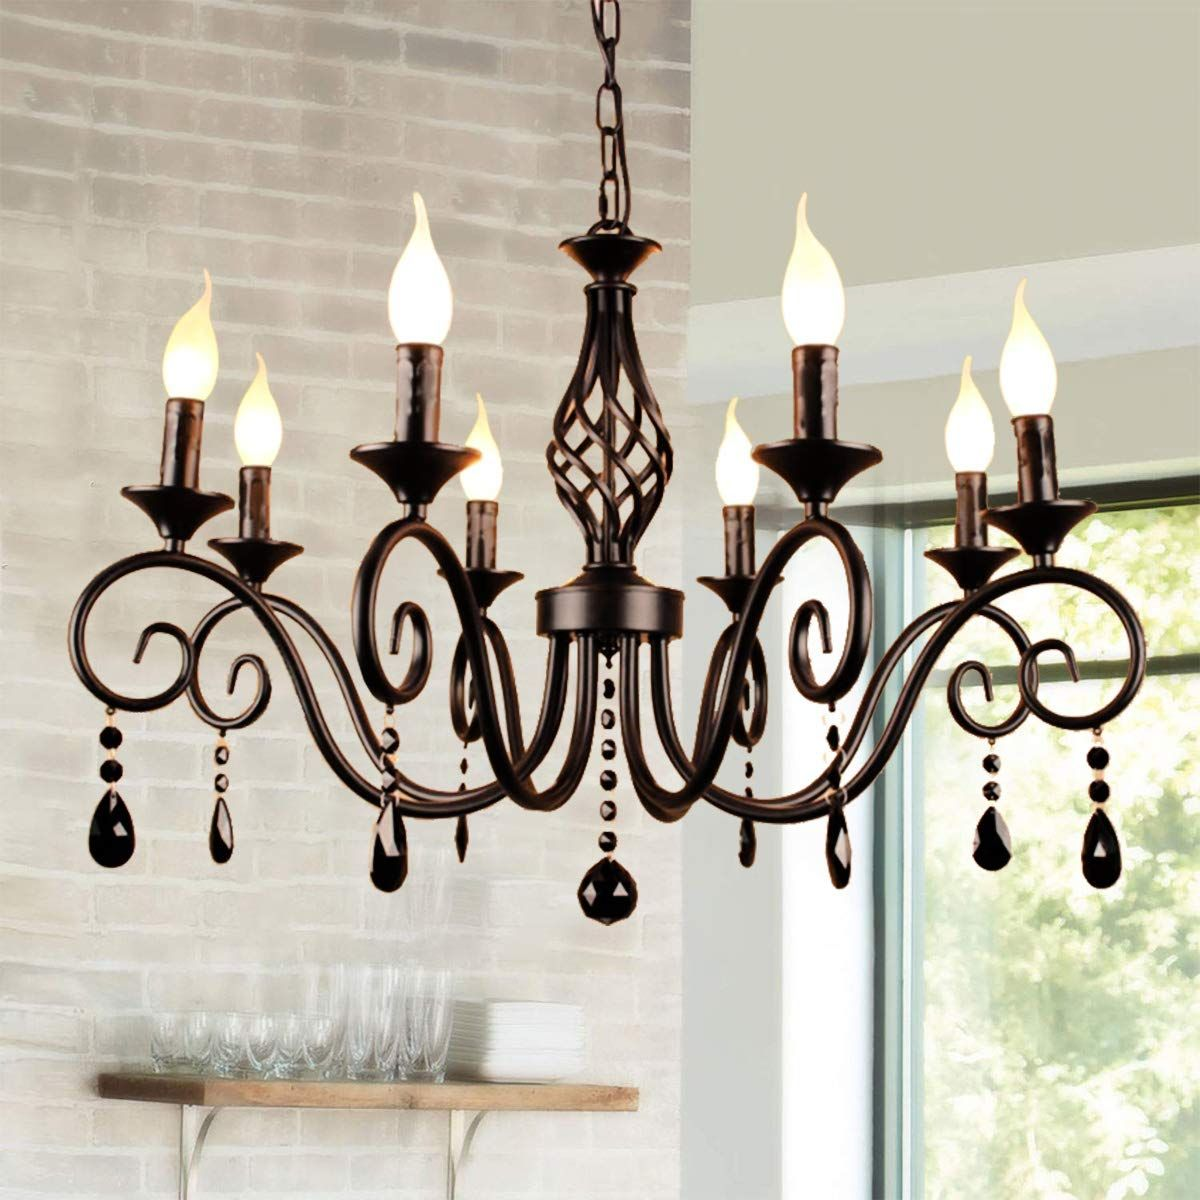 Ganeed Chandeliers,8 Light French Country Crystal Candle Chandelier,Industrial Black Vintage Pendant Light Fixture Hanging Lights for Living Room